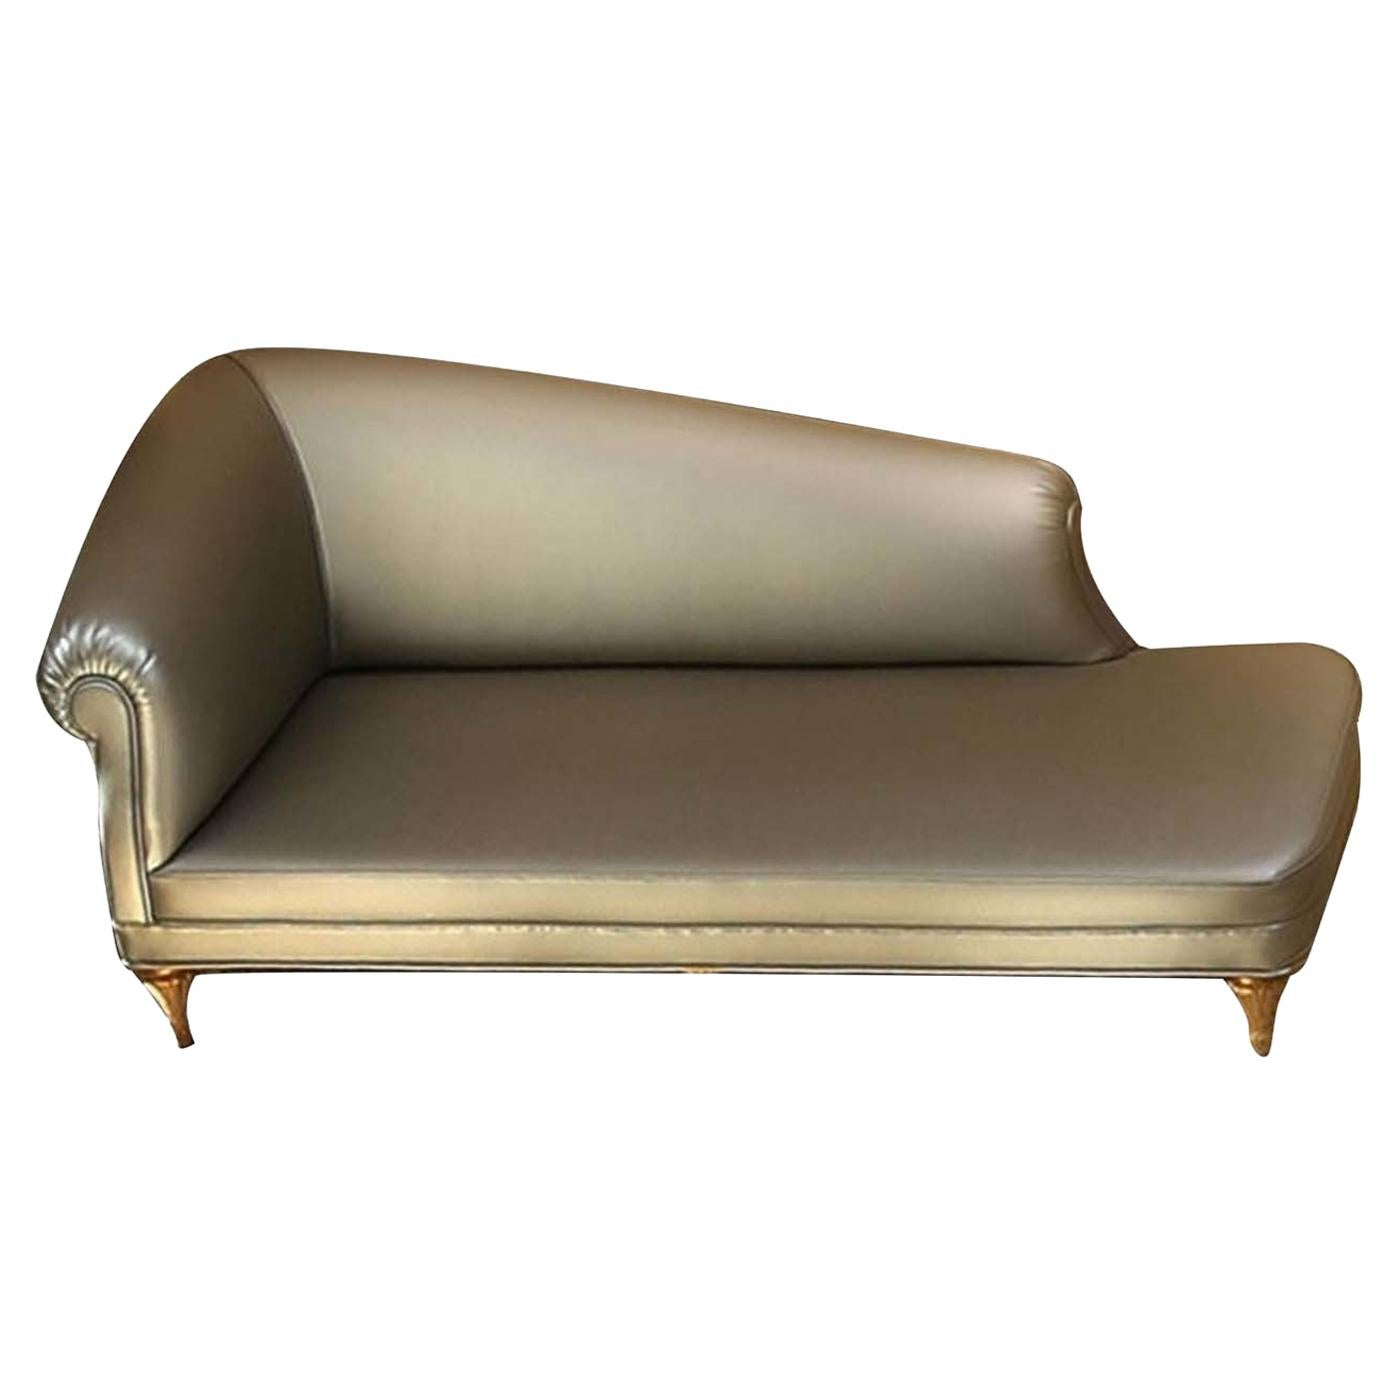 Gray Leather Chaise Longue